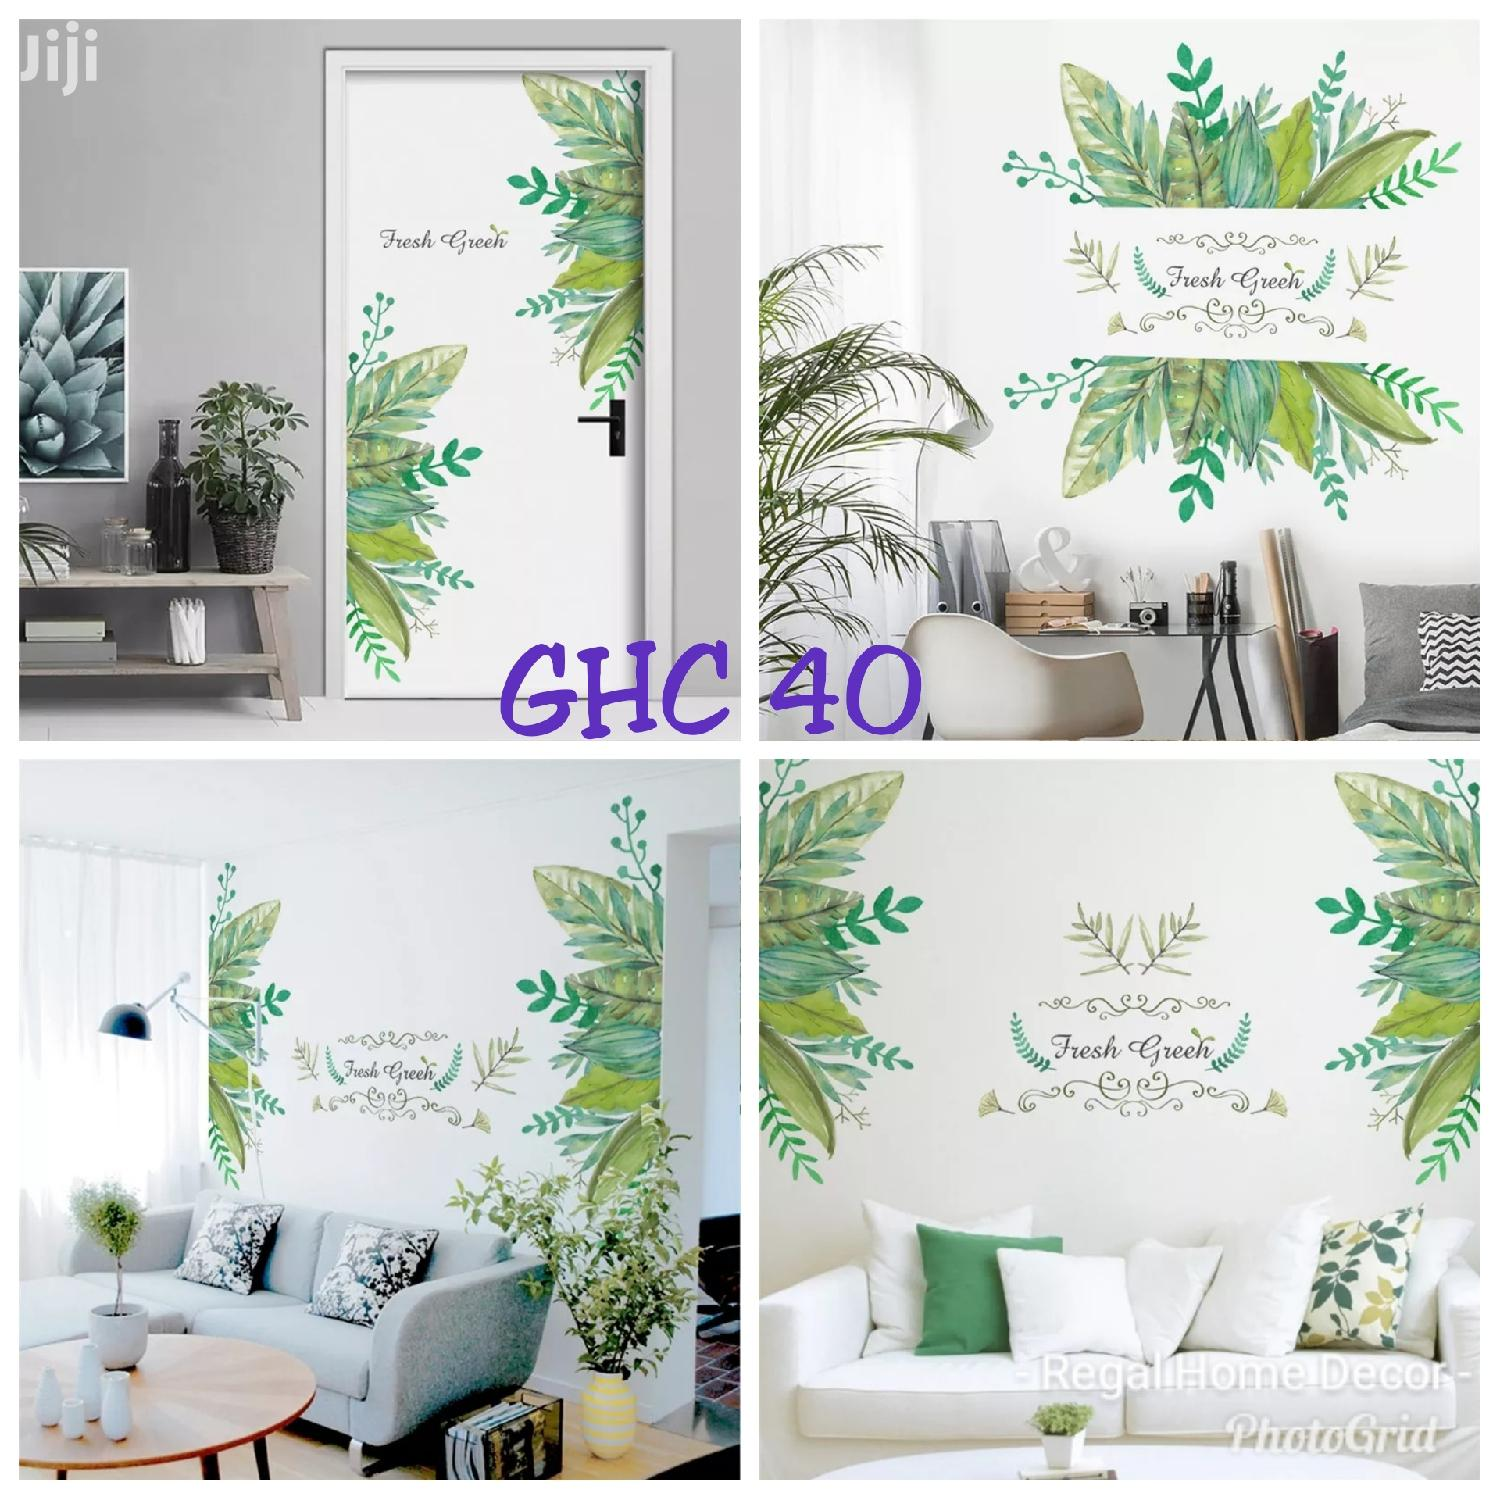 Floral Wall Stickers   Home Accessories for sale in Accra Metropolitan, Greater Accra, Ghana